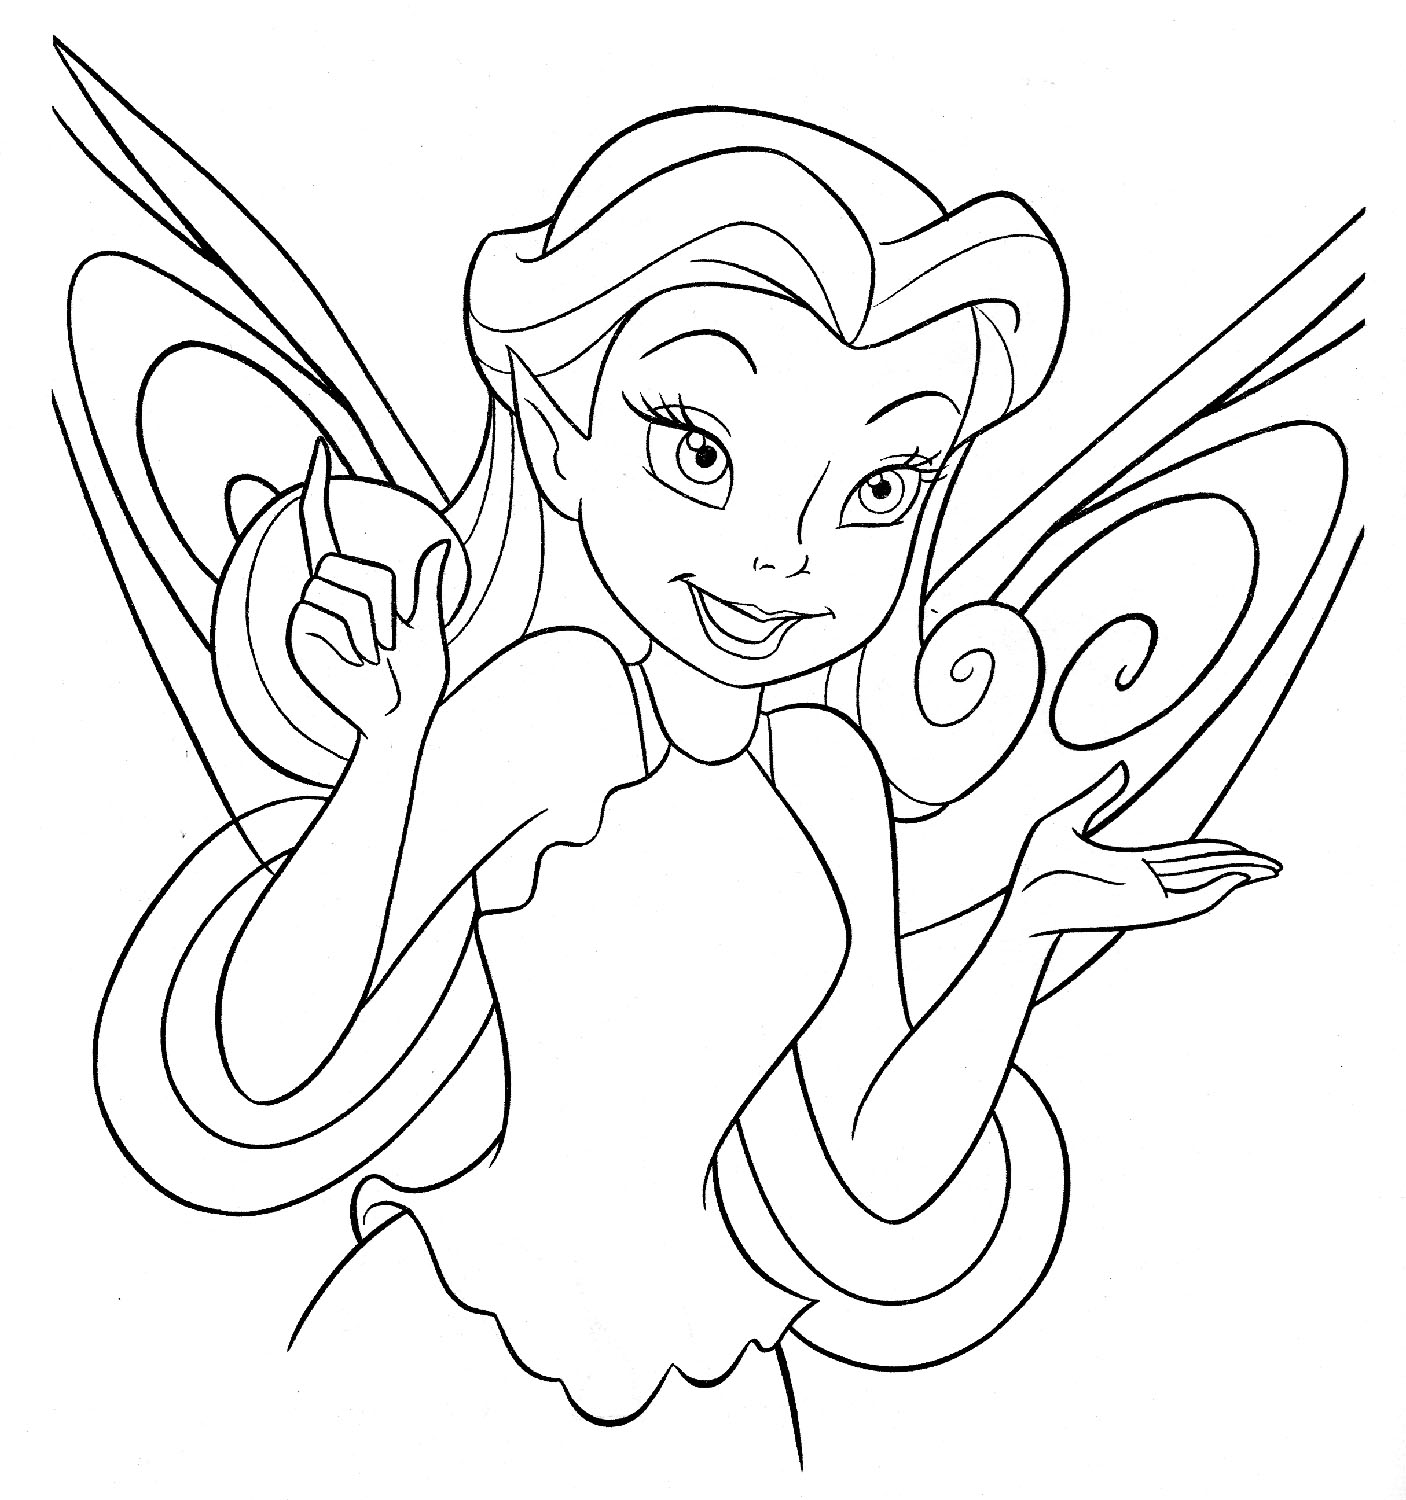 Disney coloring pages shake it up - Disney Fairies Coloring Pages Colouring Coloring Kids